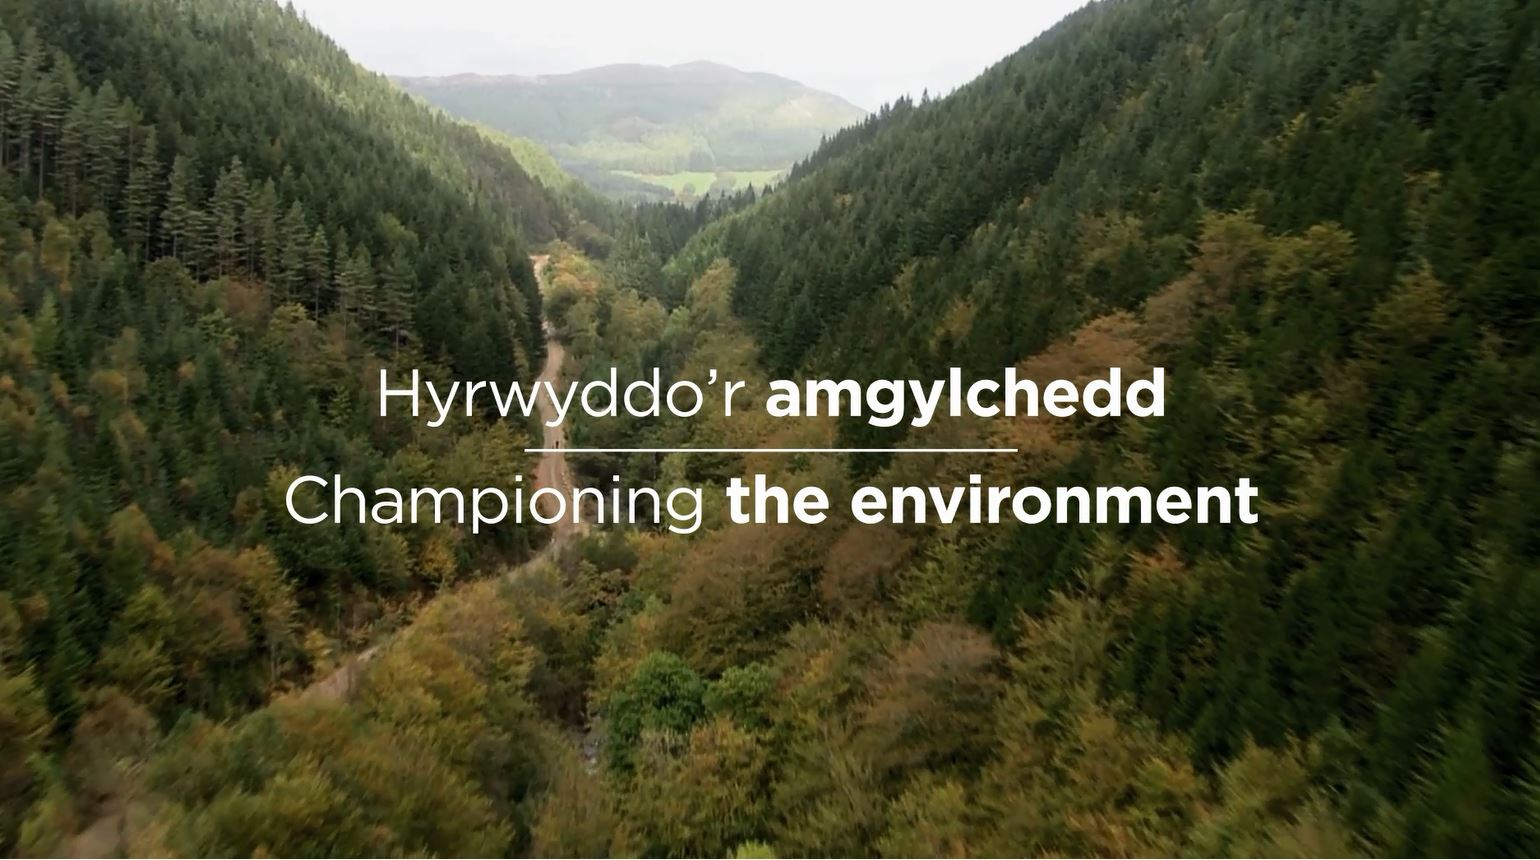 Championing the environment